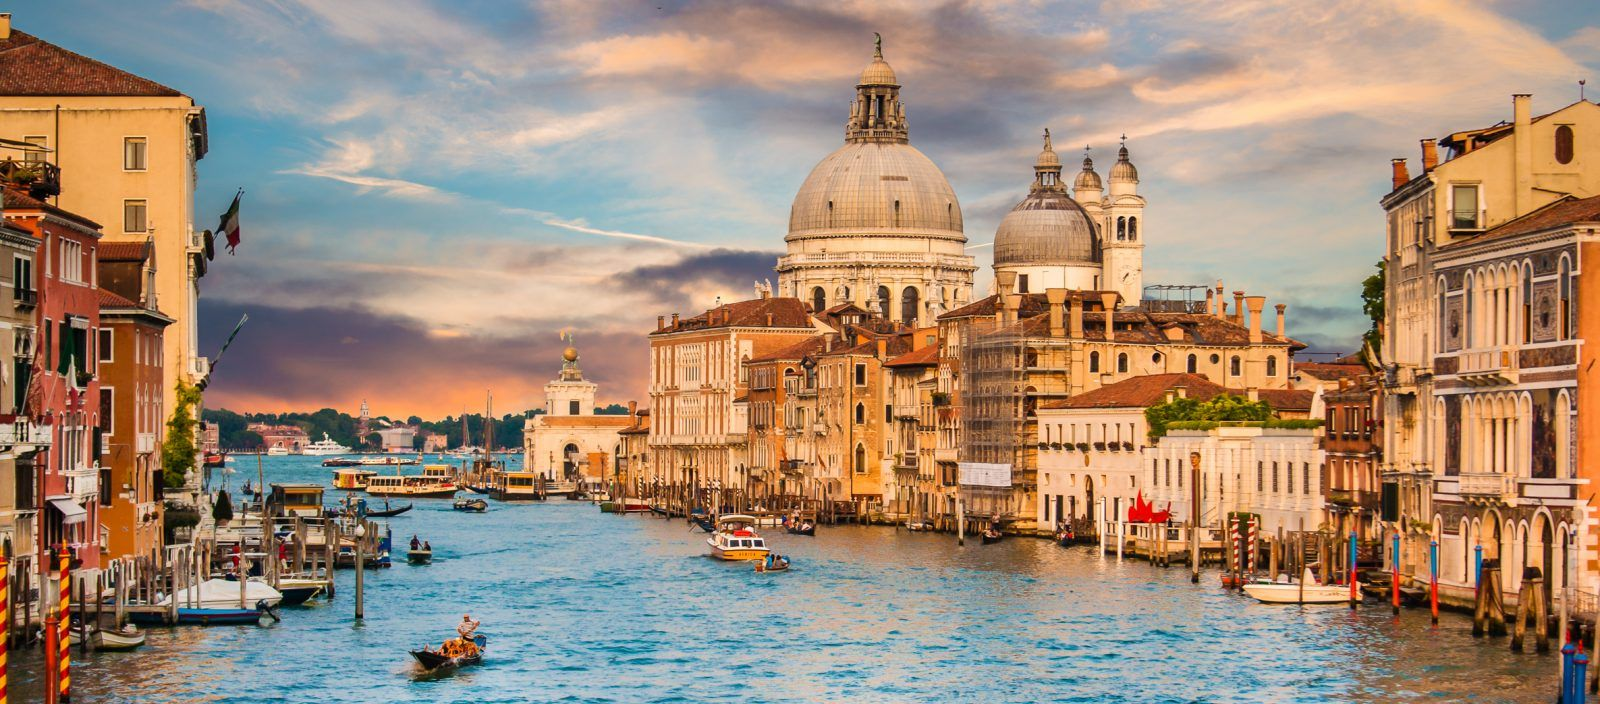 Italy: Renaissance Cities and Tuscan Life